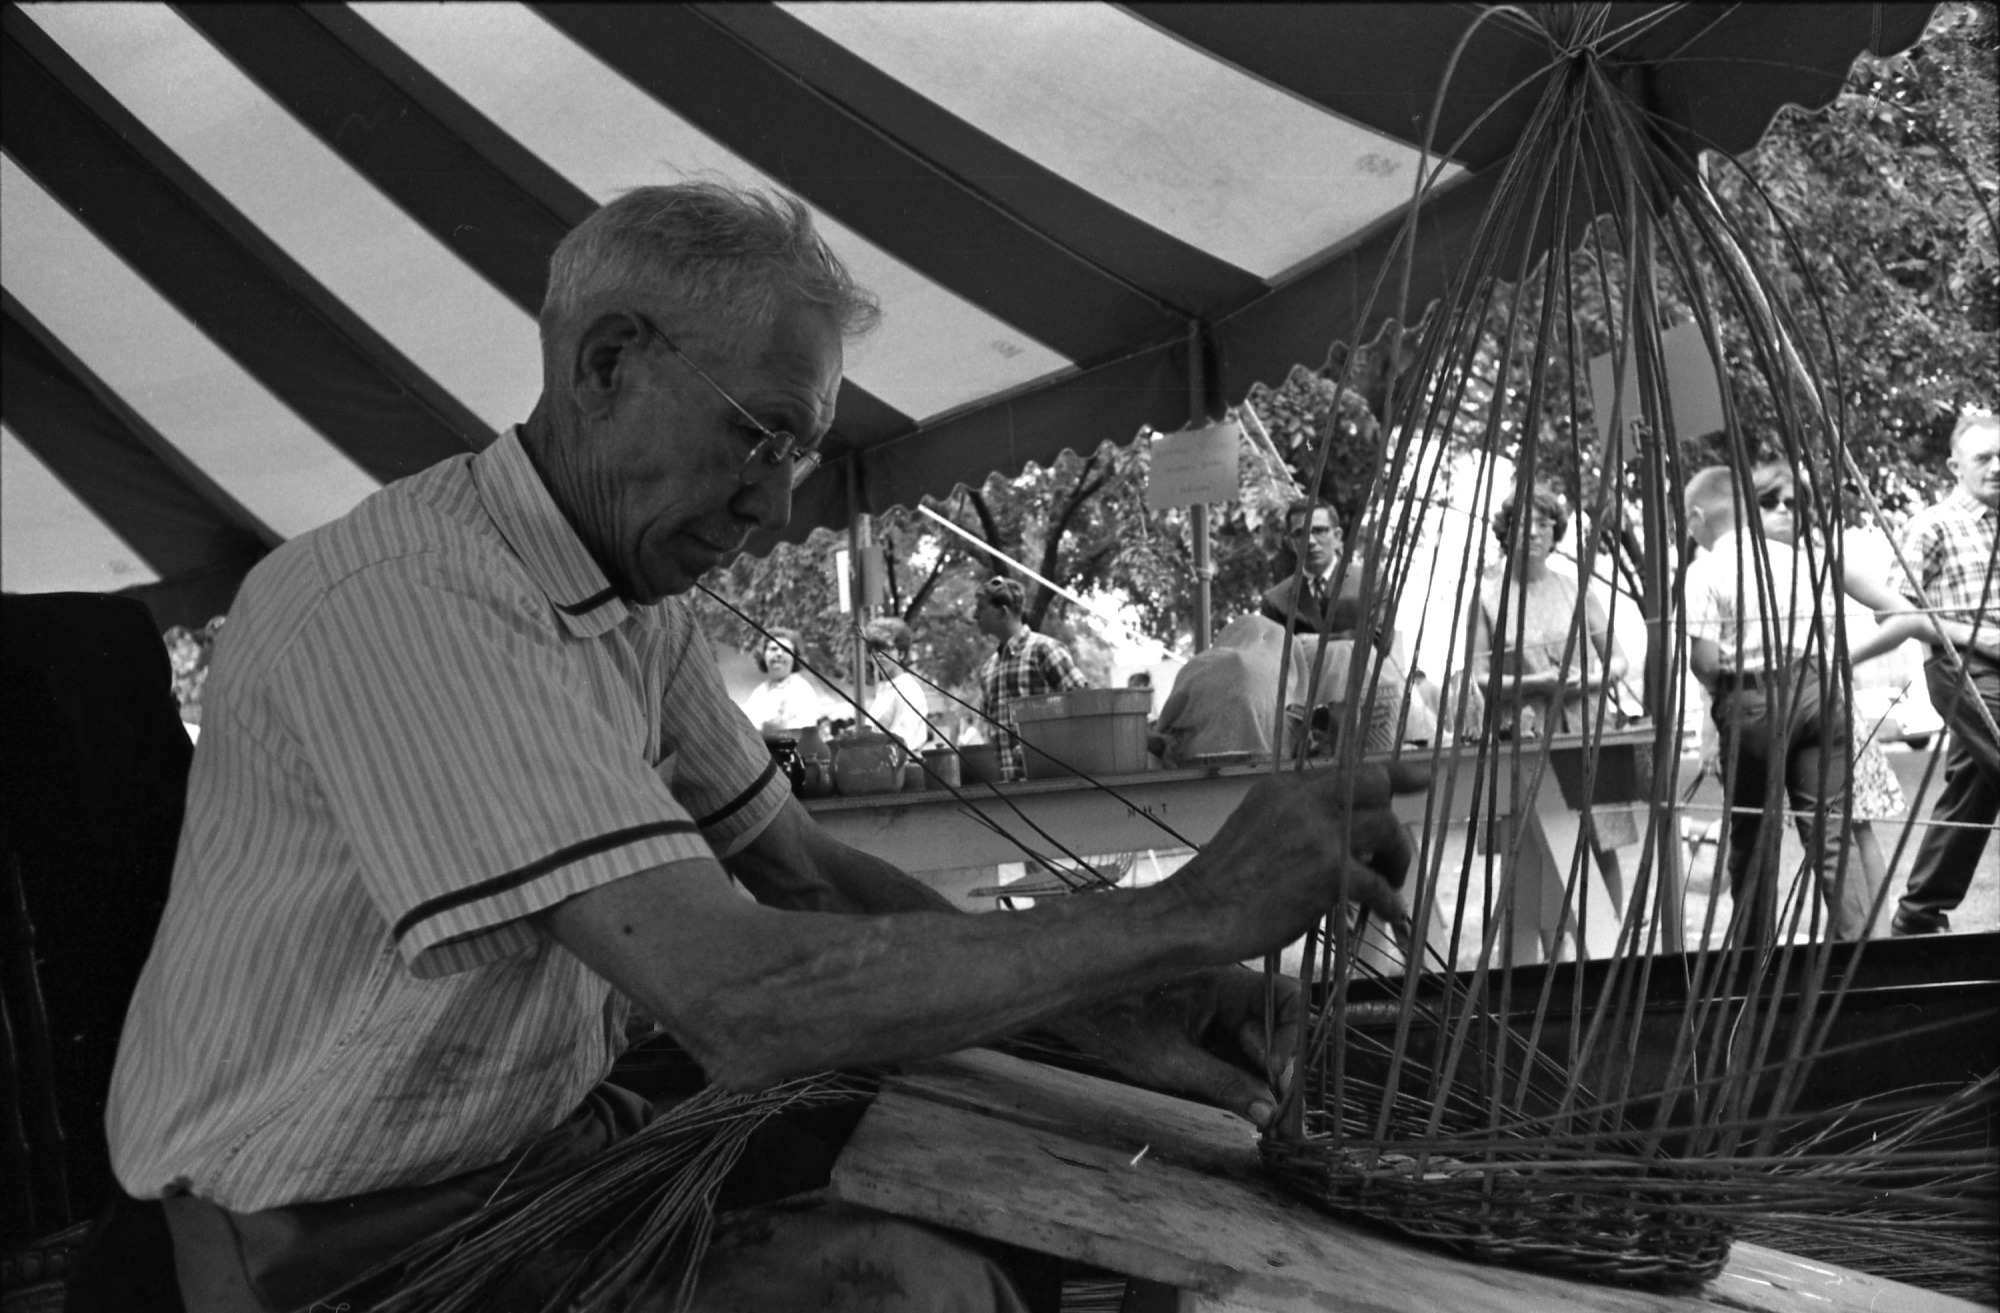 Man weaving a Basket at the Festival of American Folklife, 1967